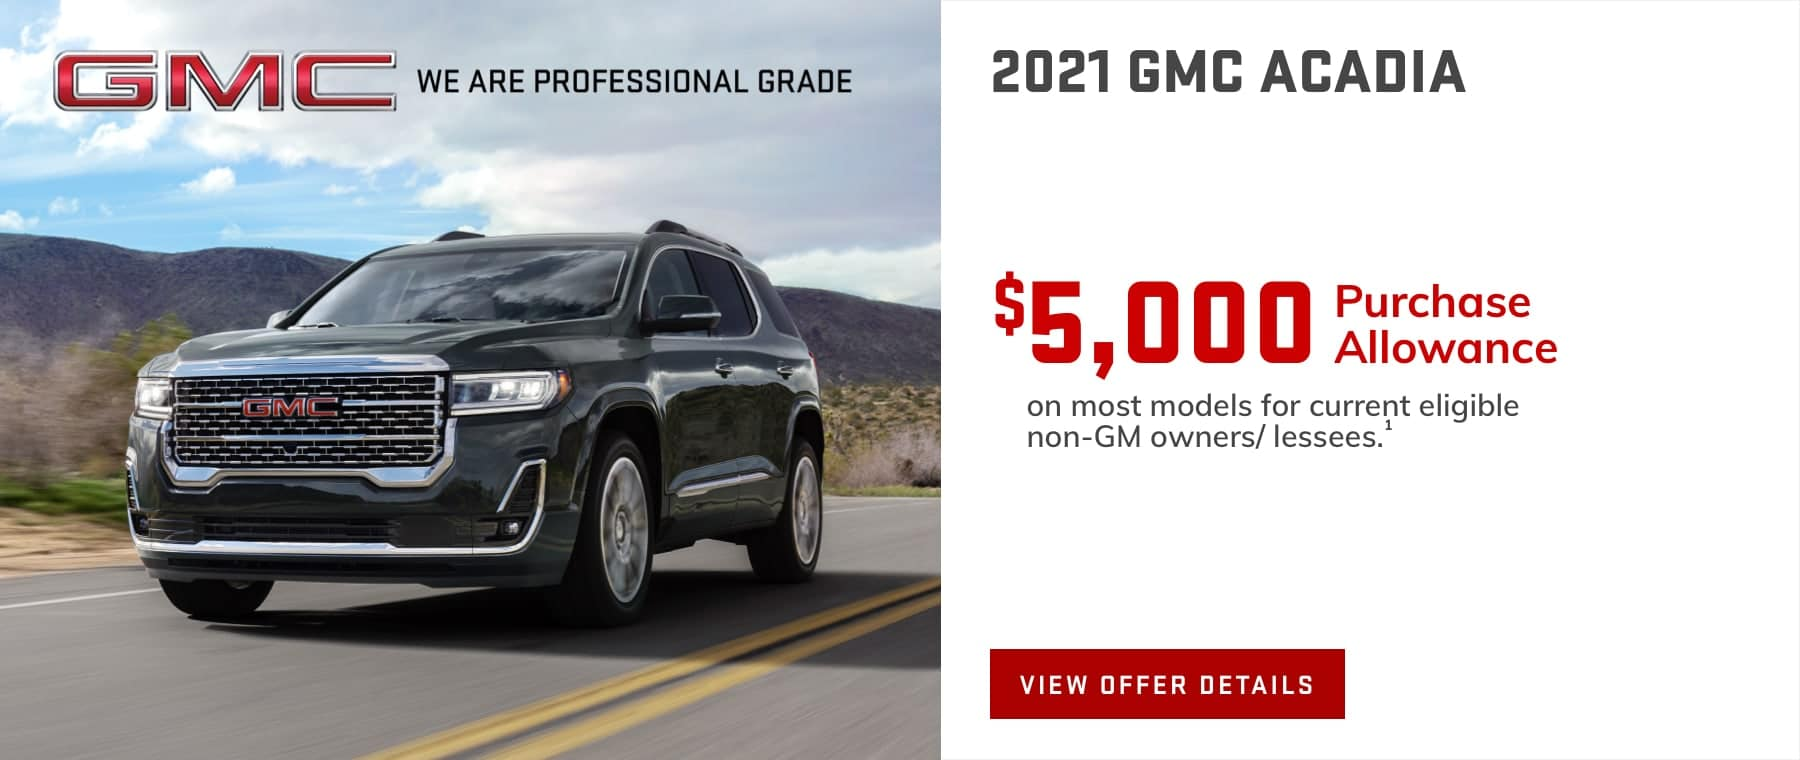 $5,000 Purchase Allowance on most models for current eligible non-GM owners/lessees.